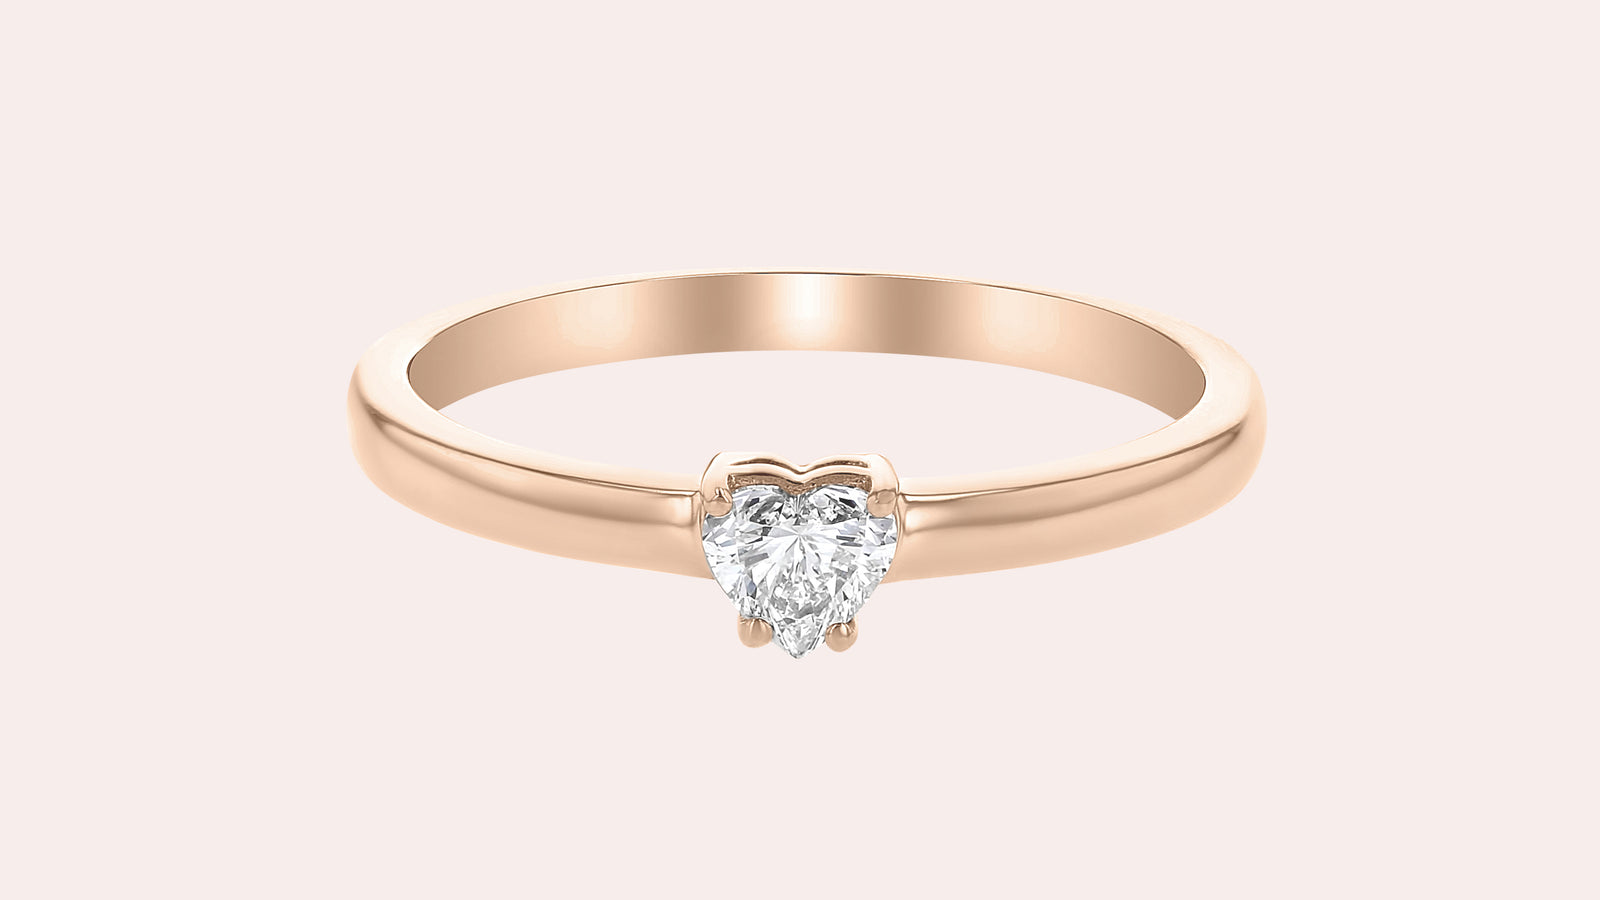 The Heart Shaped Diamond Ring